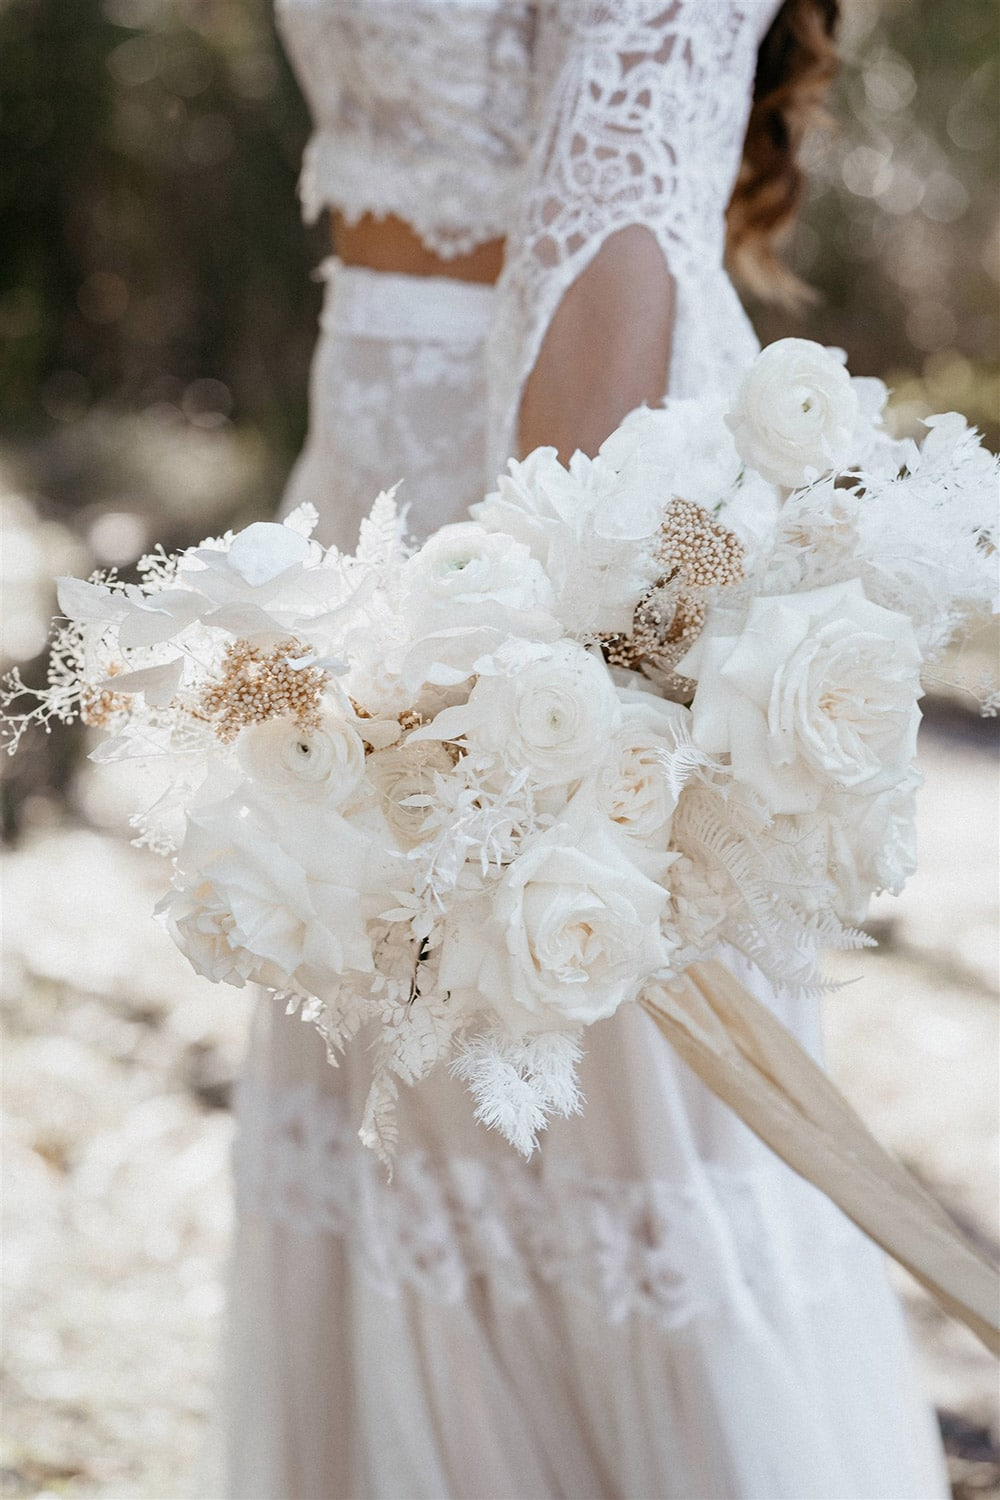 Outdoor Festival Bohemian Wedding Inspiration   This boho bride carries a beautiful white monochromatic wedding bouquet which features ranunculus, roses, fern, silver dollar eucalyptus, ruscus, ming fern, leatherleaf fern, mini gypsophila and neutral rice flower accents tied with champagne ribbon.   Photography: Shae Estella Photo